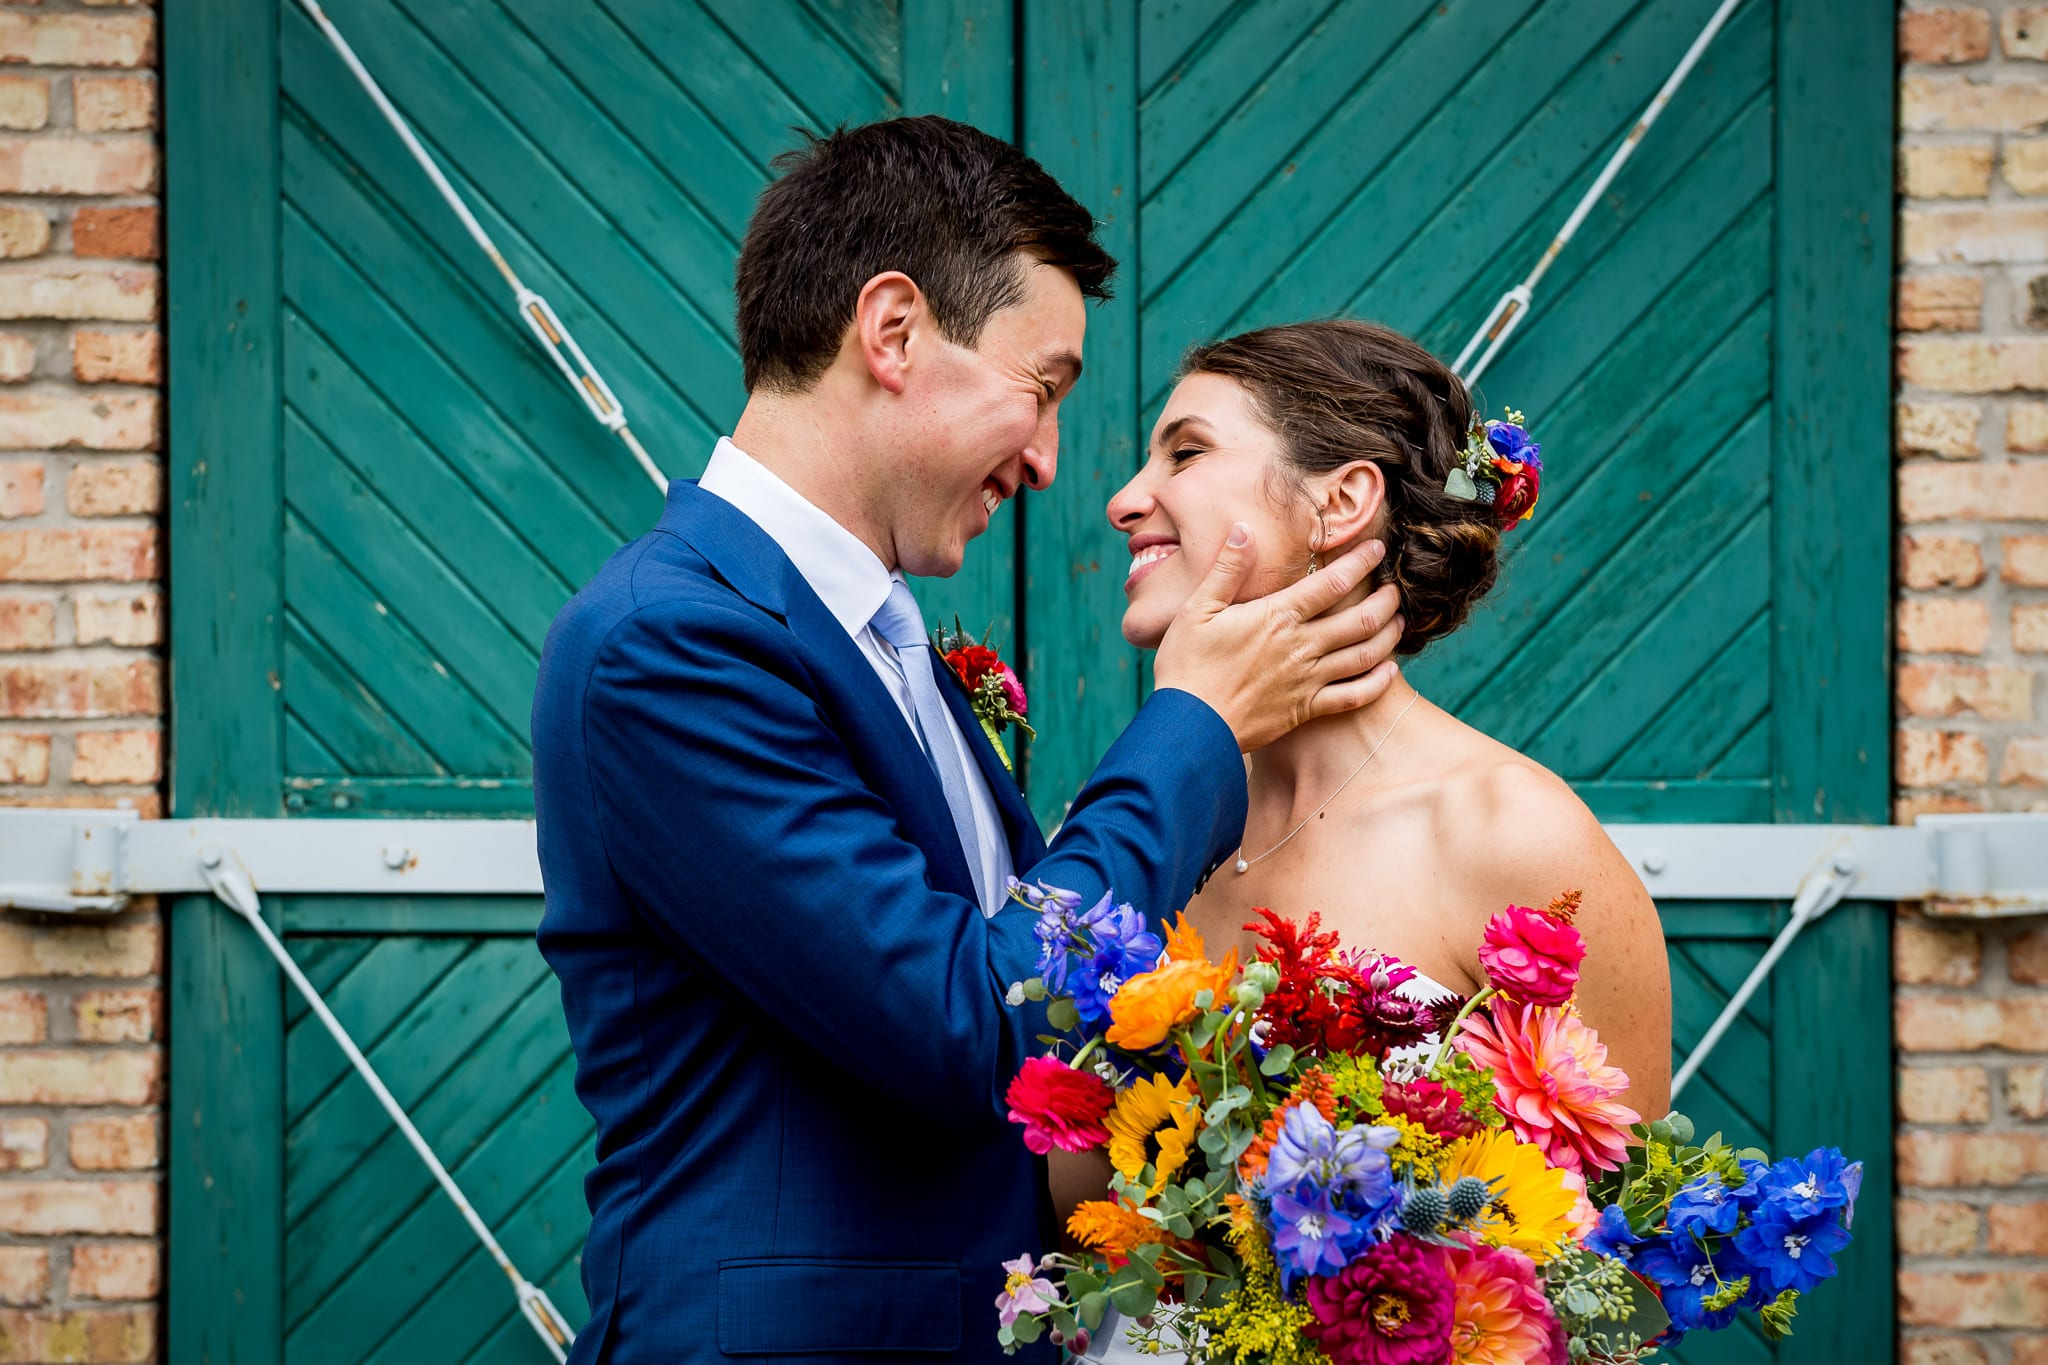 Bride and groom posing while looking at each other in front of the signature green wood and brick background at the Nicollet Island Pavilion in Minneapolis on their wedding day